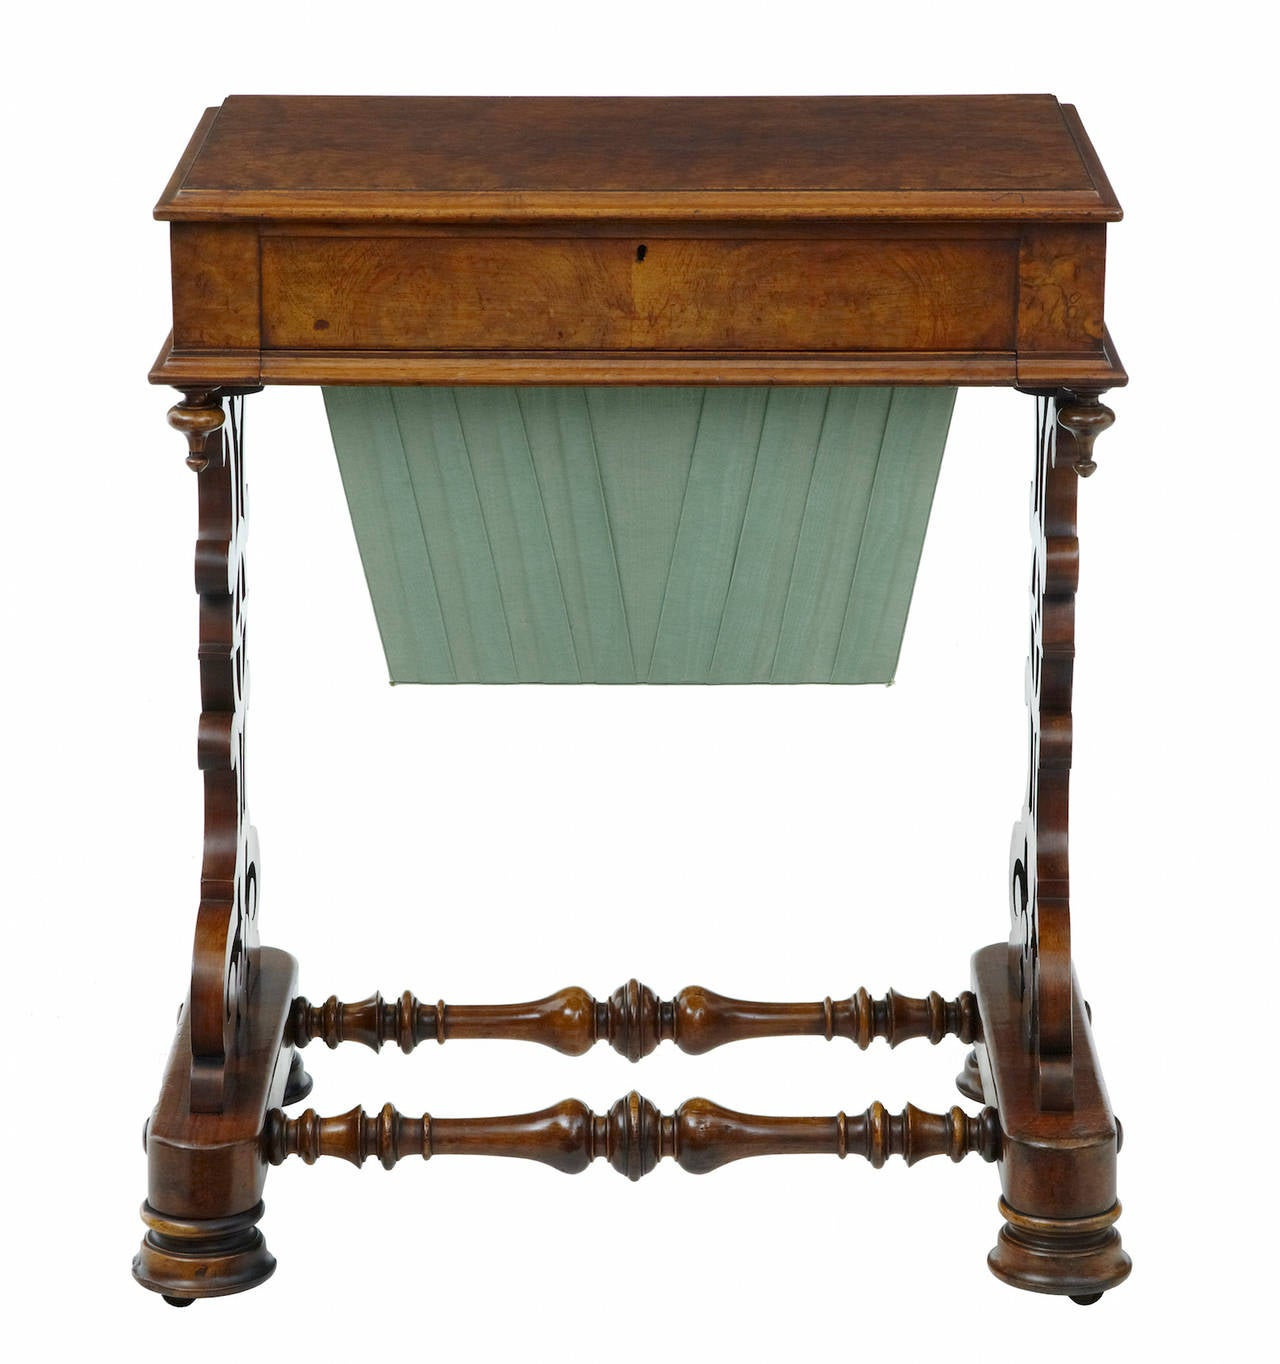 High Victorian ladies work table, circa 1870. Beautiful walnut work table of good color and patina. Satinwood interior with fretwork covered compartments. The interior is echoed by the fretwork legs, united by turned stretchers. Standing on